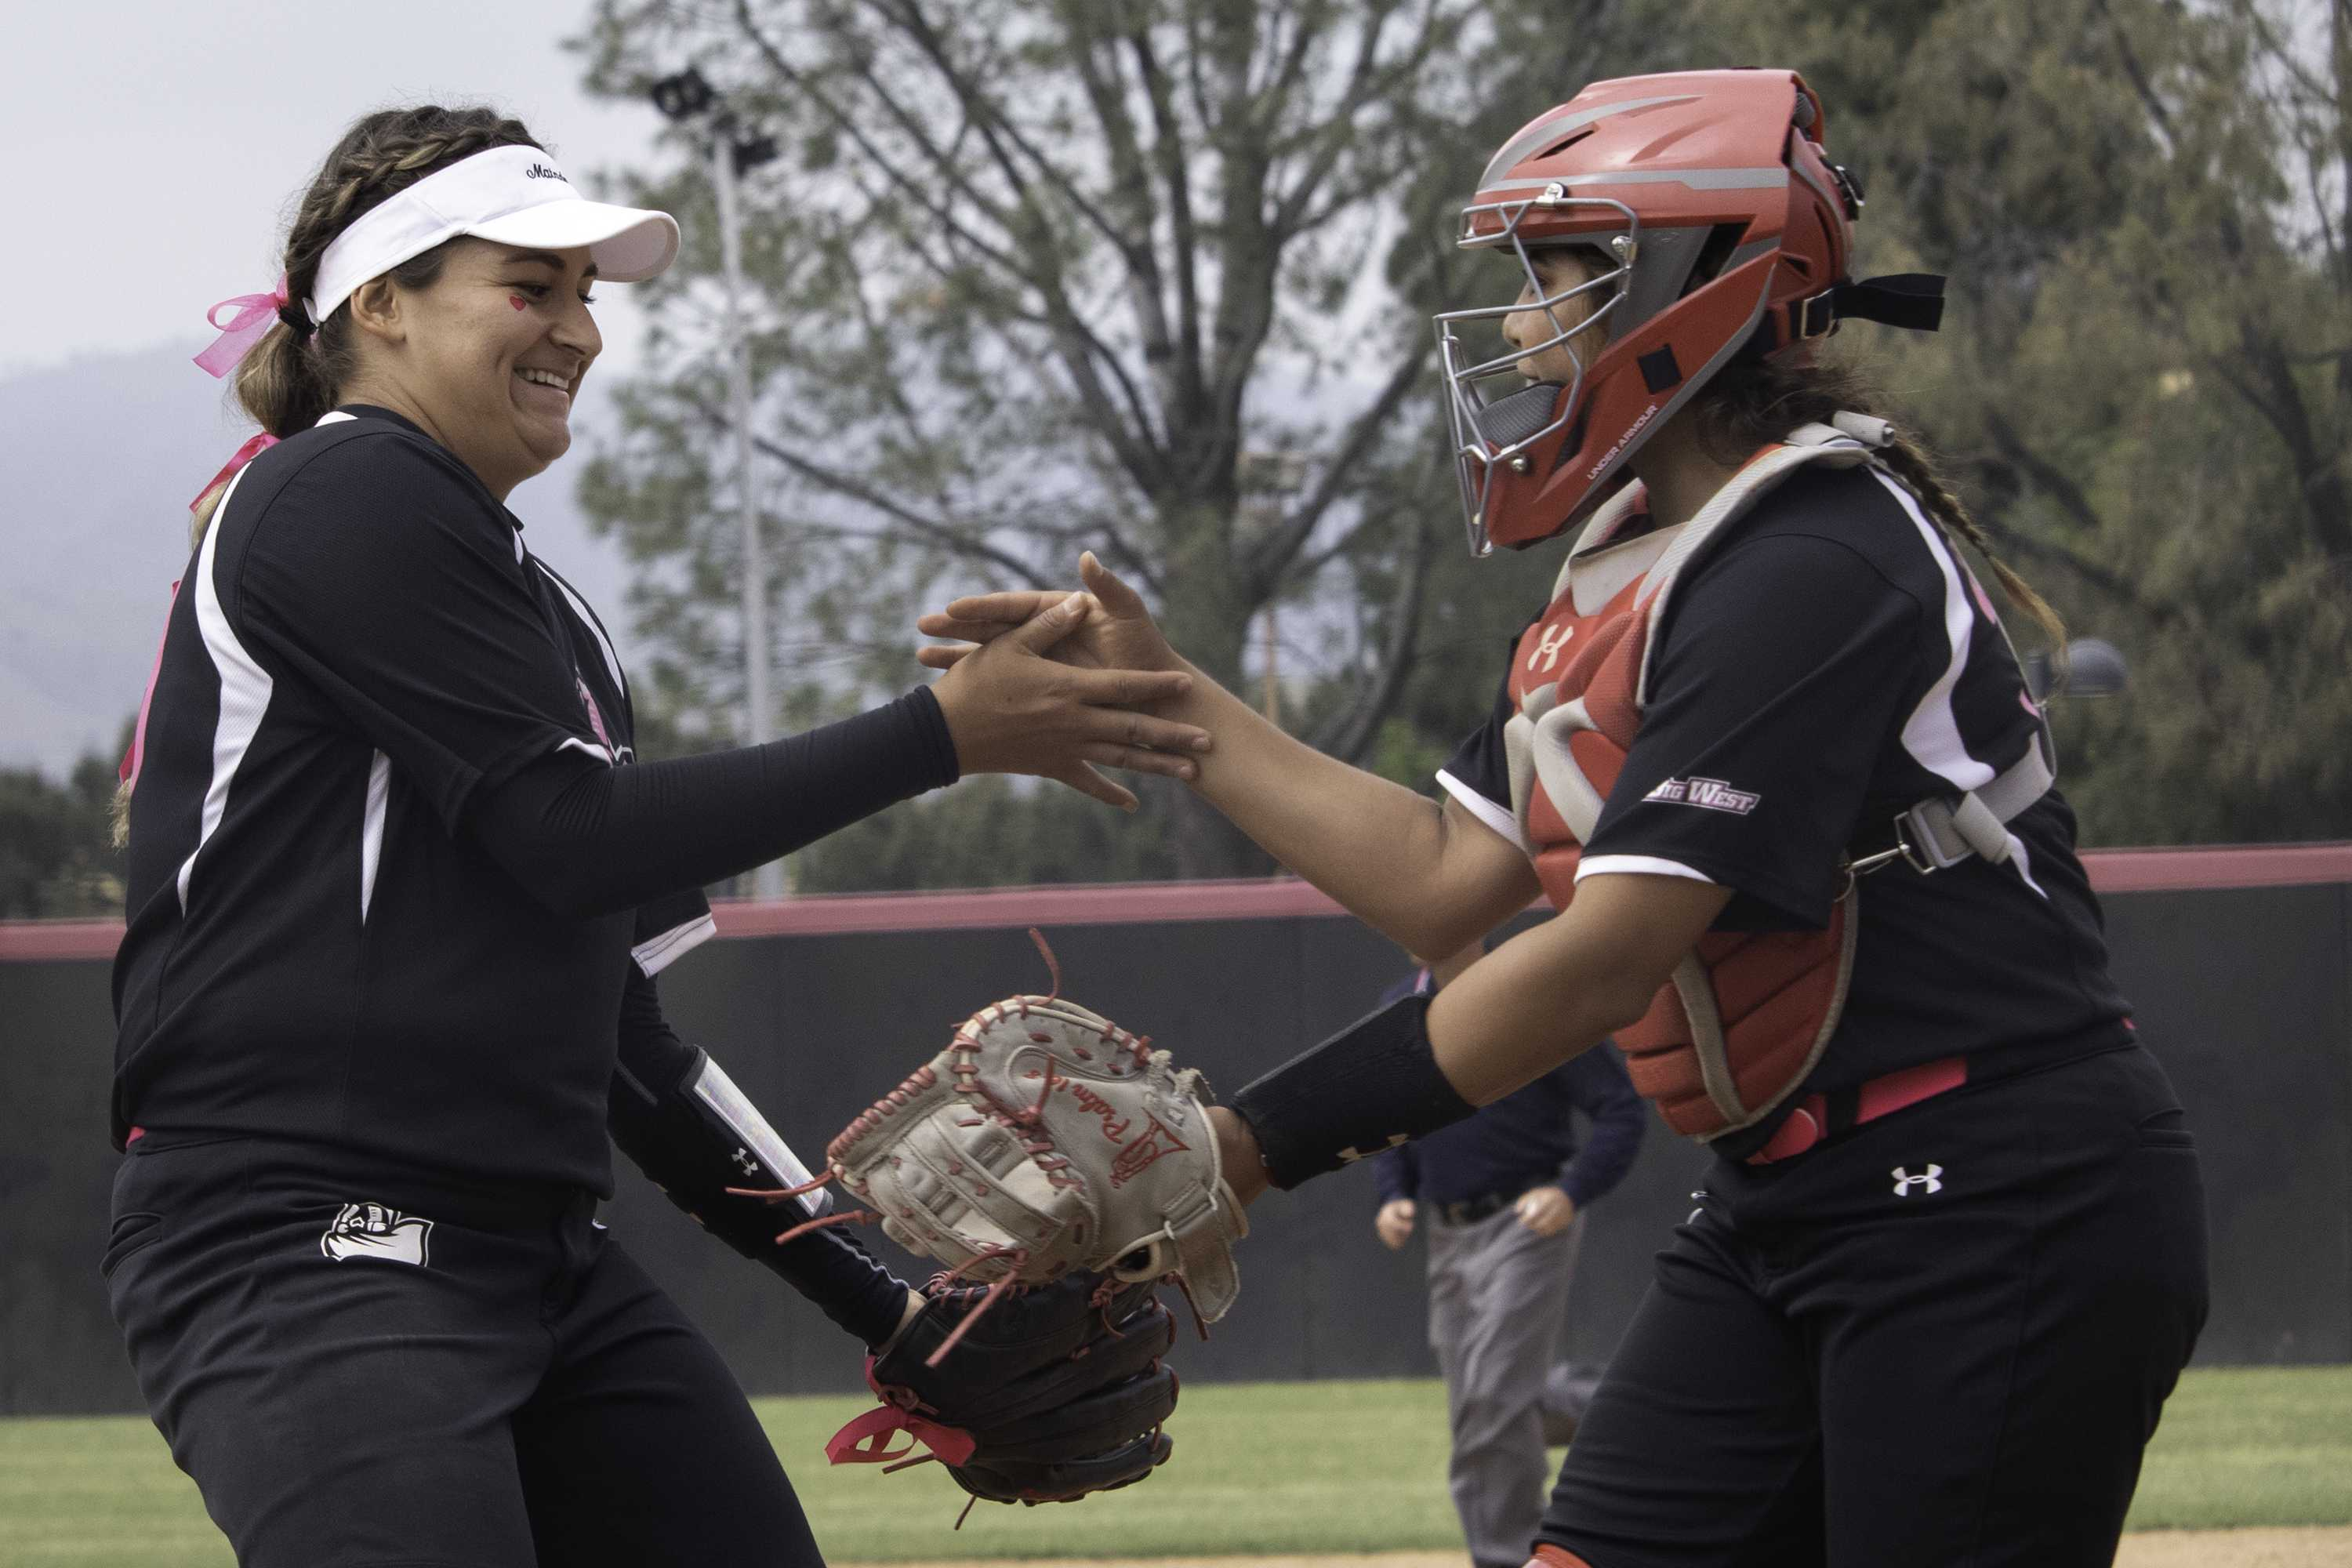 Sophomore Jillian James celebrates with junior Gator Rascon after recording the final out in the win over Cal Poly on Saturday. James pitched 18 total innings in the series, recording complete games in both of the Matadors' wins to earn CSUN's first conference series victory of the season. Photo credit: Tyler Wainfeld